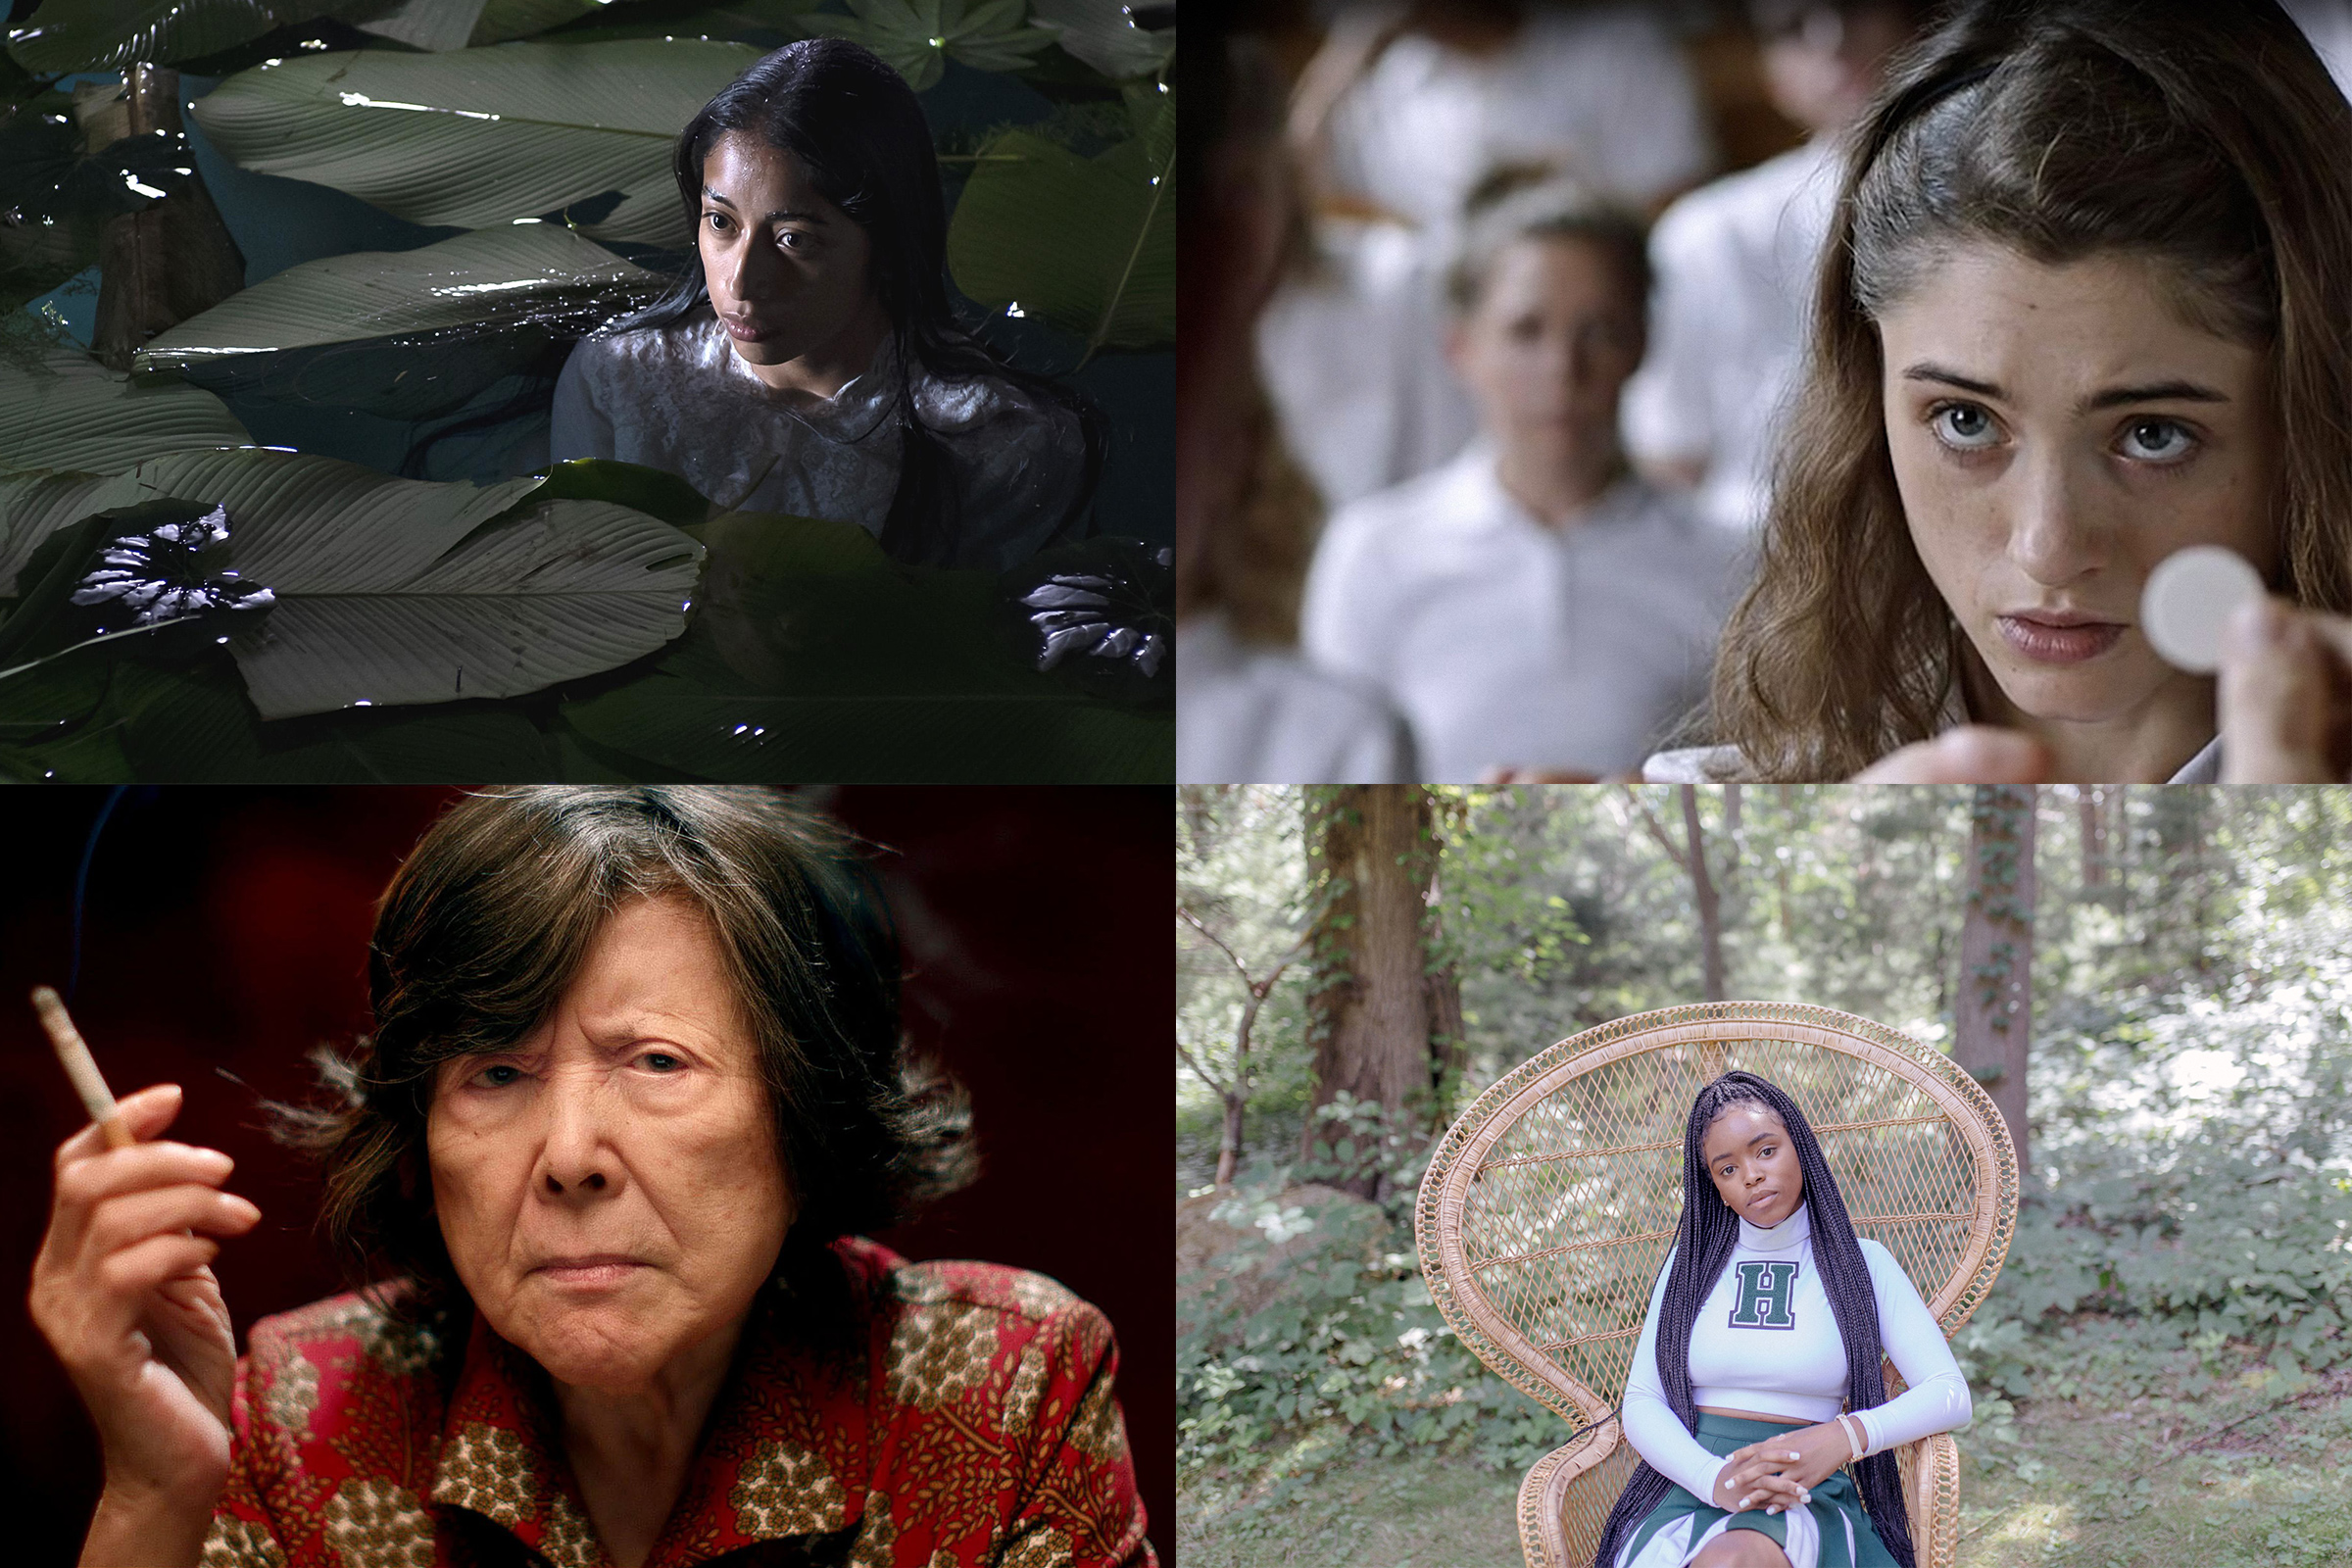 Maria Mercedes Coroy in La llorona; Natalia Dyer in Yes, God, Yes; Tsai Chin in Lucky Grandma; Lovie Simone in Selah and the Spades